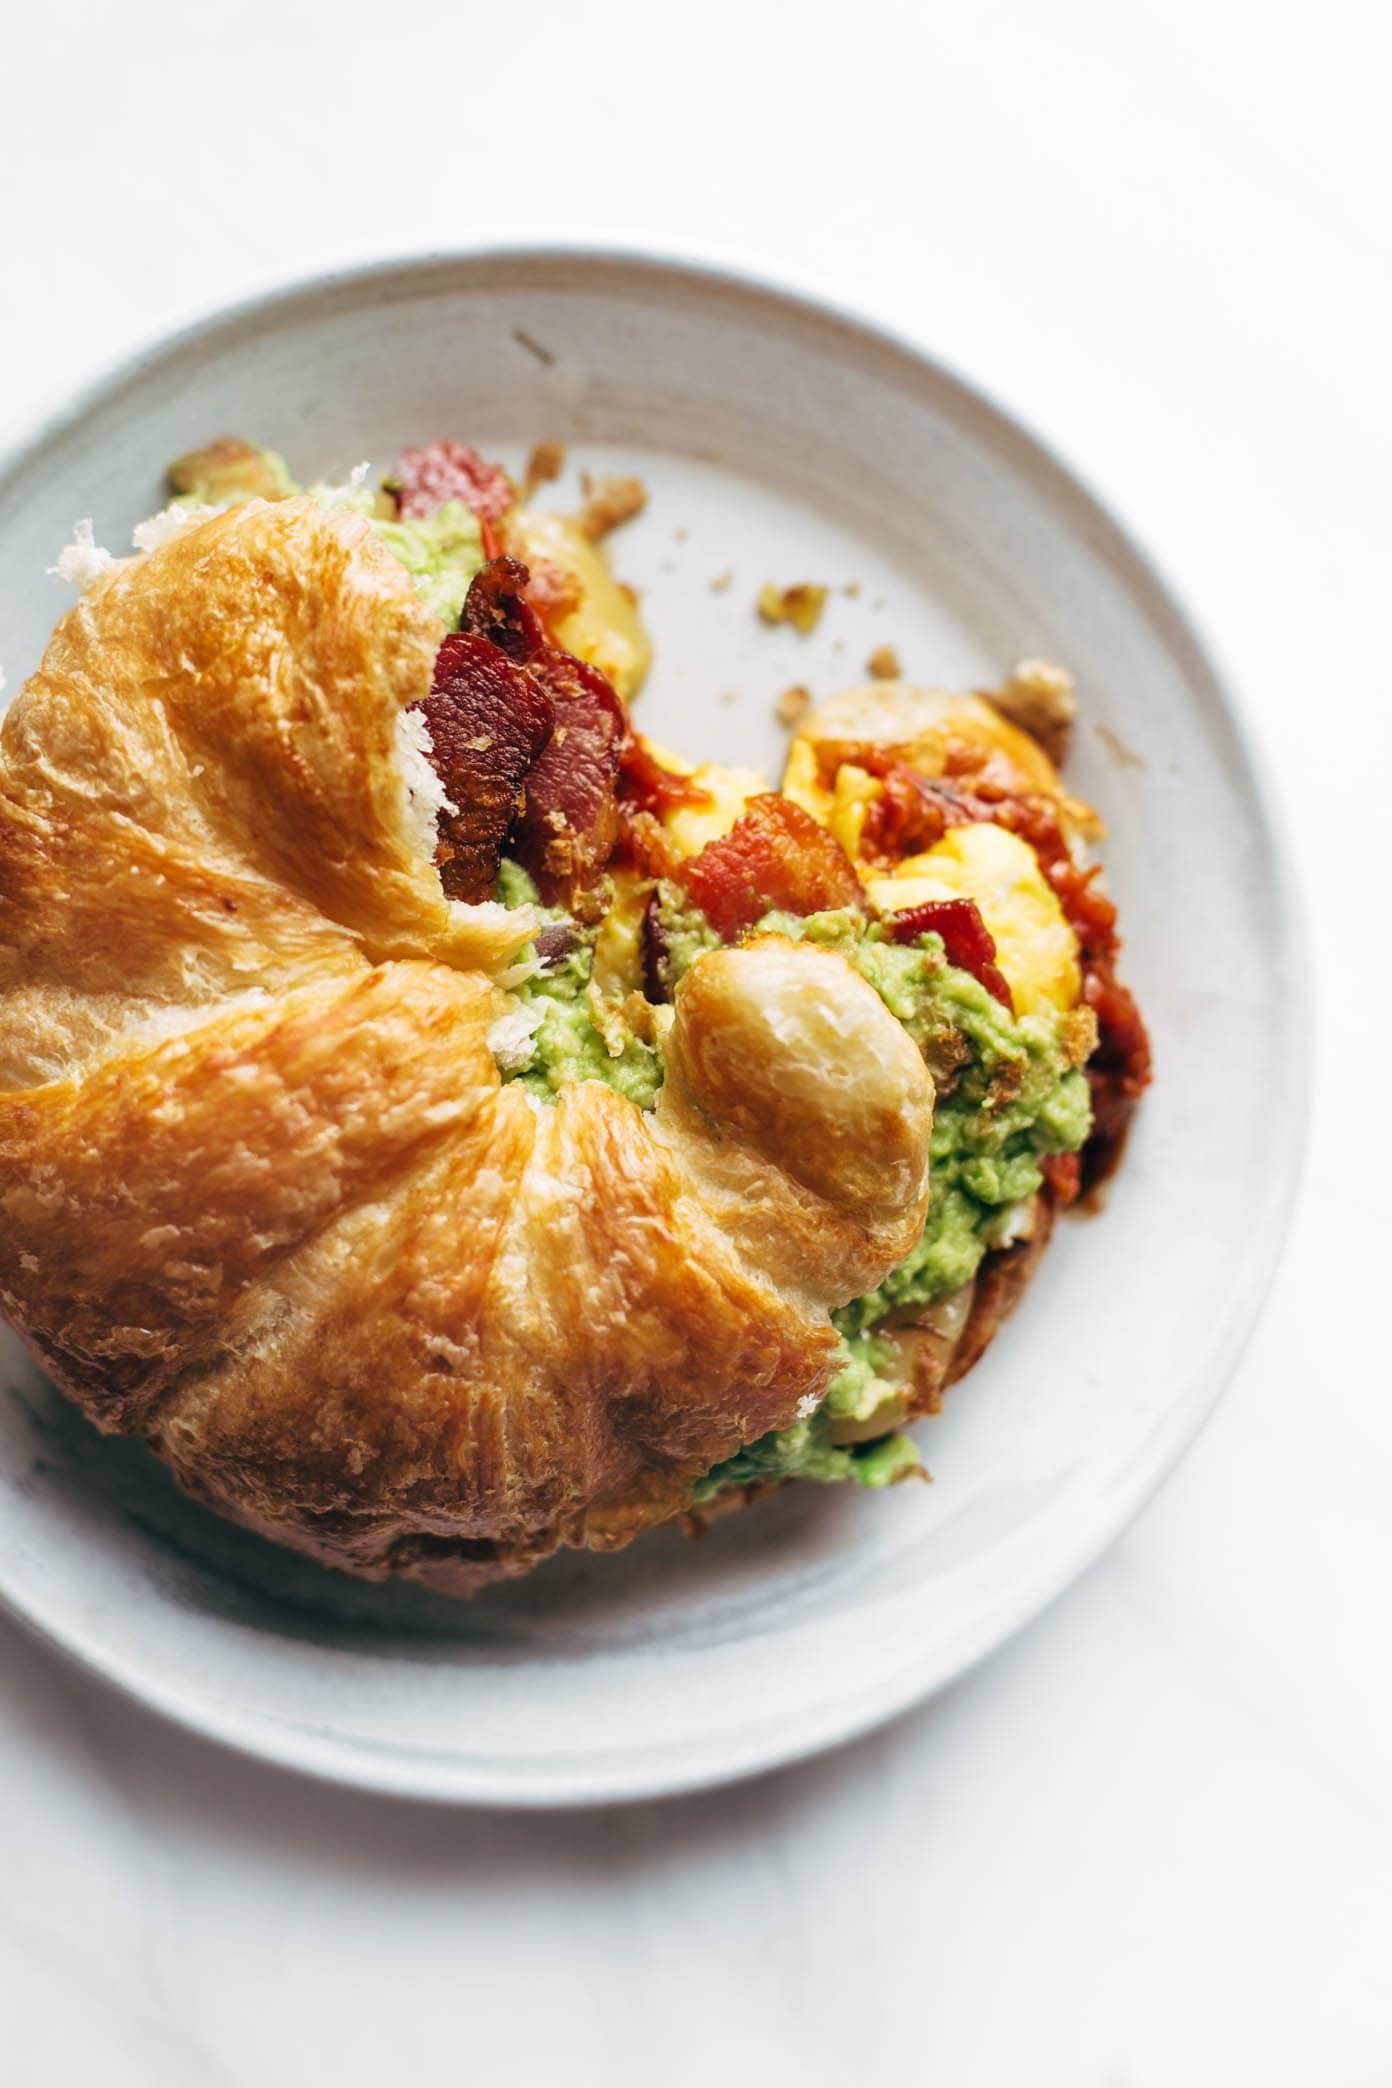 The Ultimate Breakfast Sandwich with eggs, bacon, guacamole, chunky tomato sauce, pepper jack cheese, all on a toasted croissant. 😍 Favorite ever. | pinchofyum.com